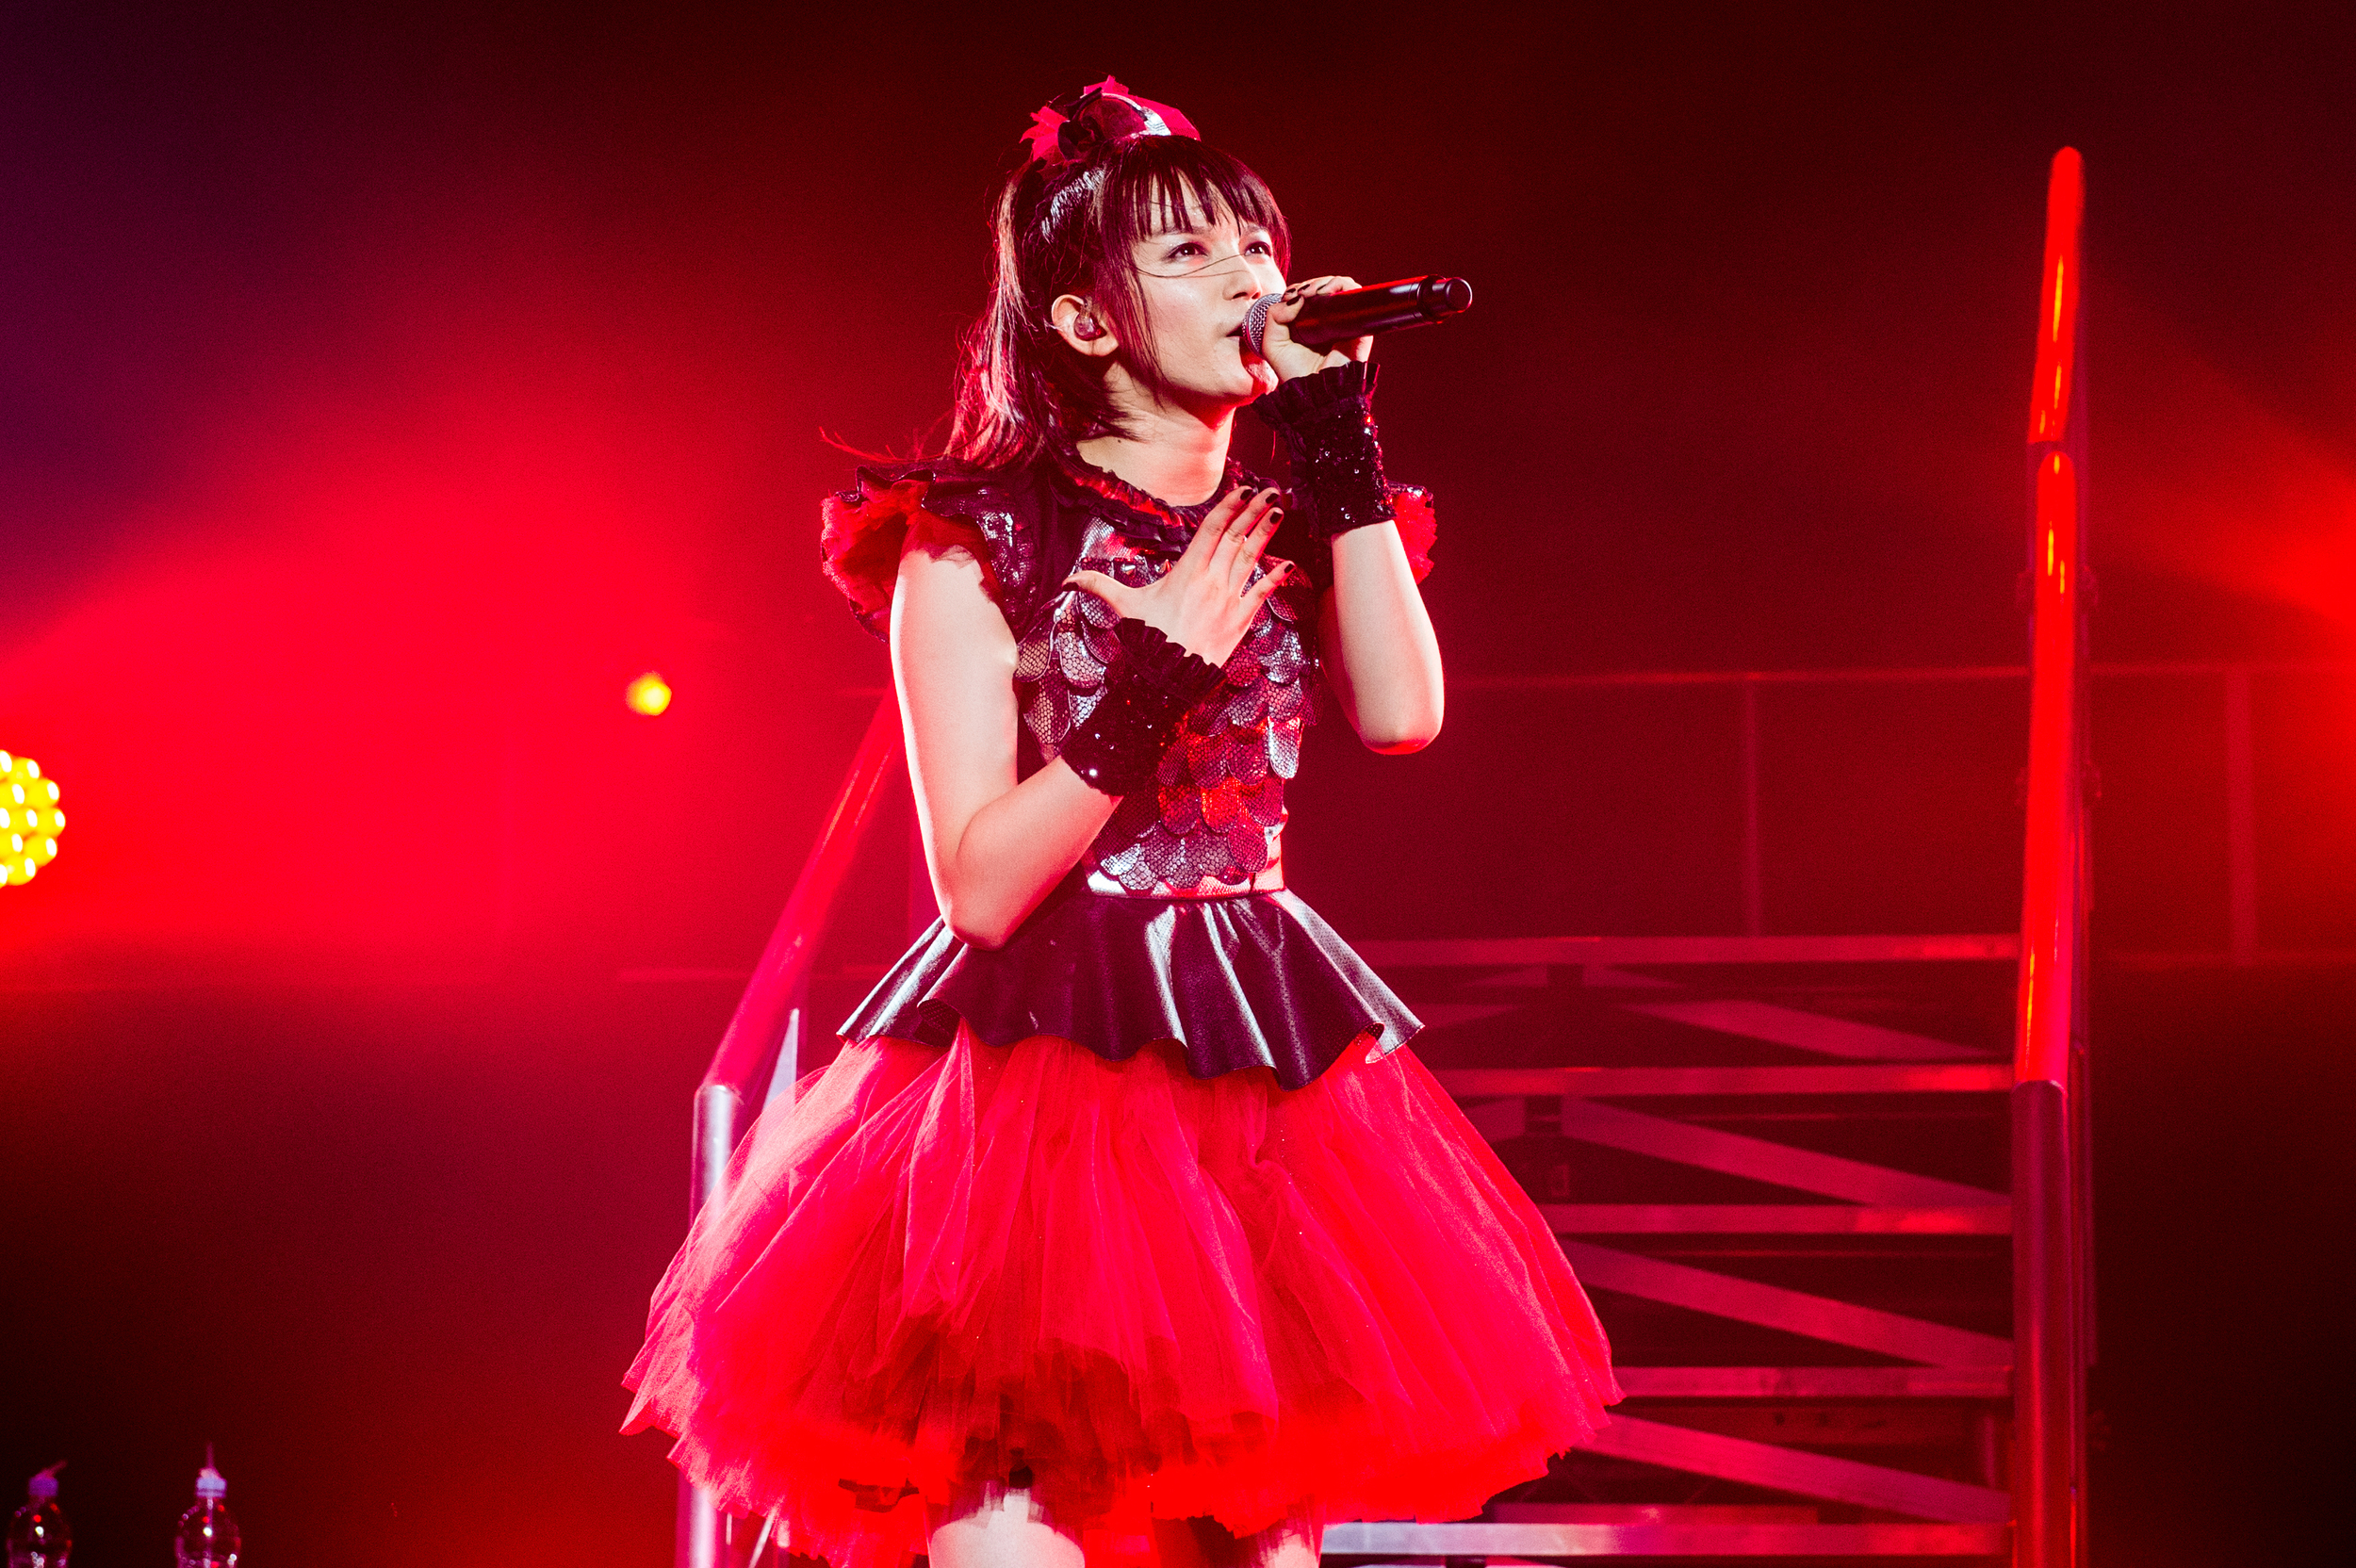 BABYMETAL - QUEENS OF CONTRACY